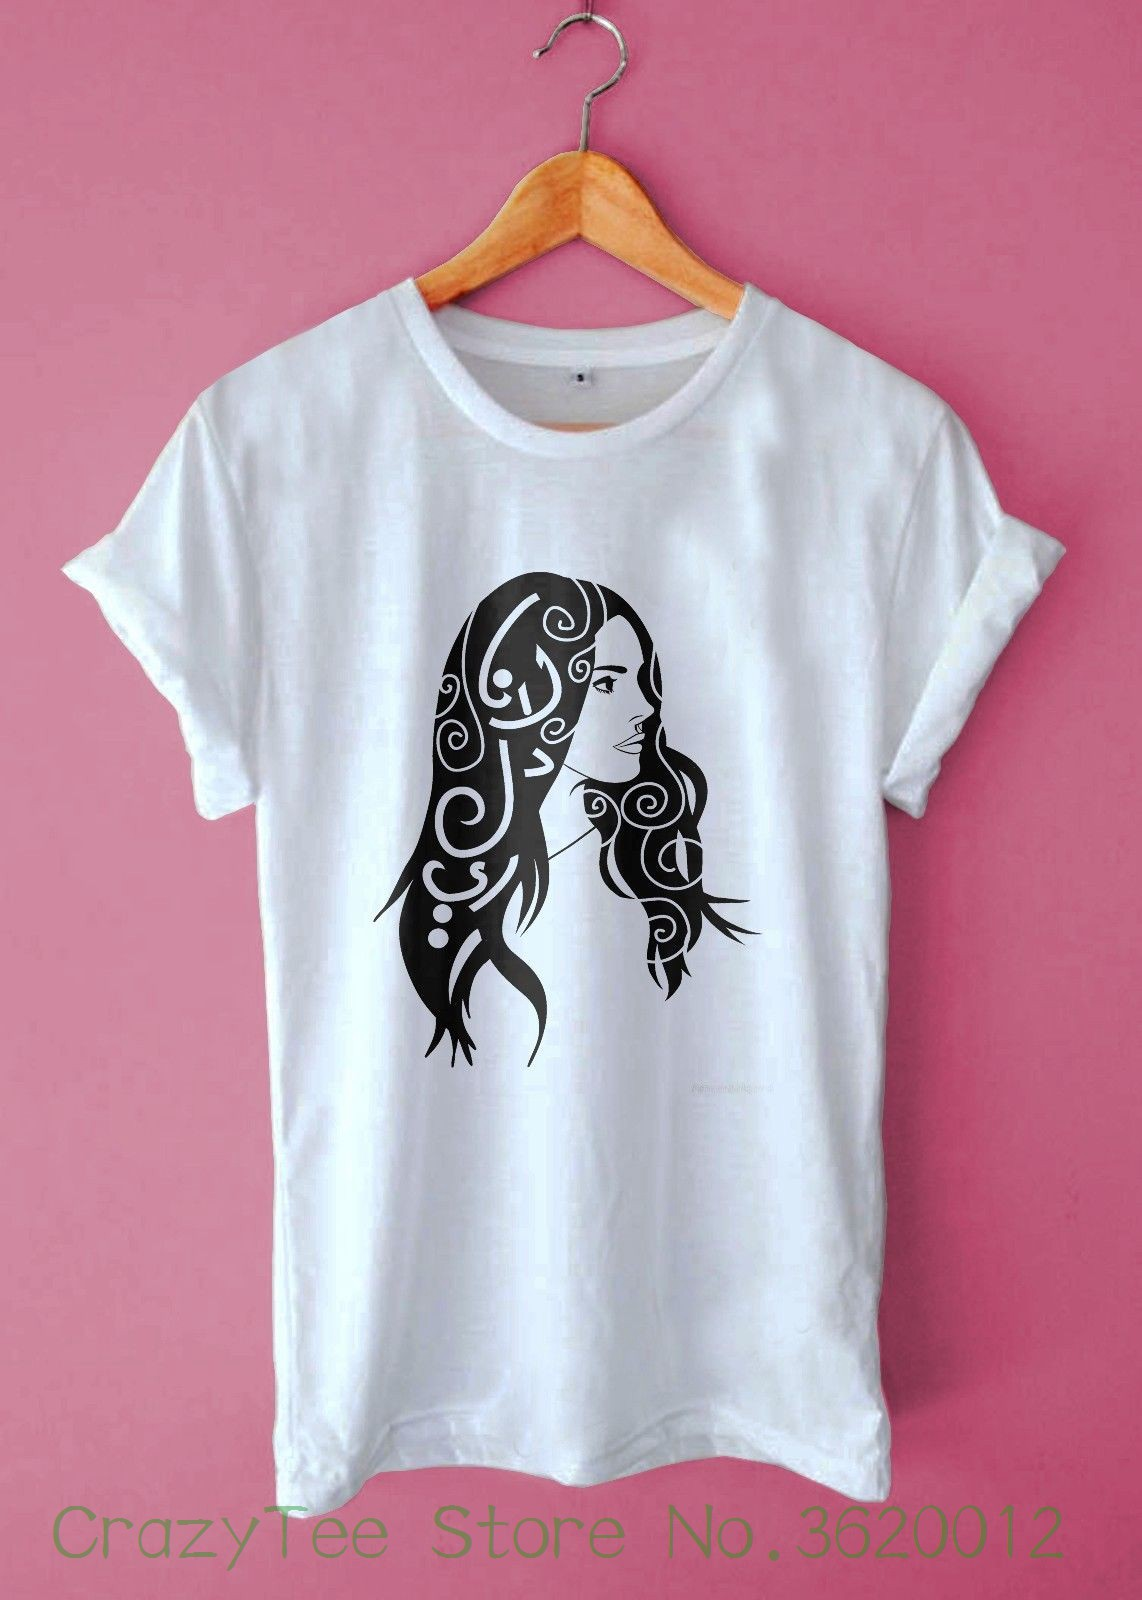 Womens Tee Lana Del Rey Pop Art Stencil Style Singer New Casual Street Wear Unisex T-shirt Movie Shirt ...